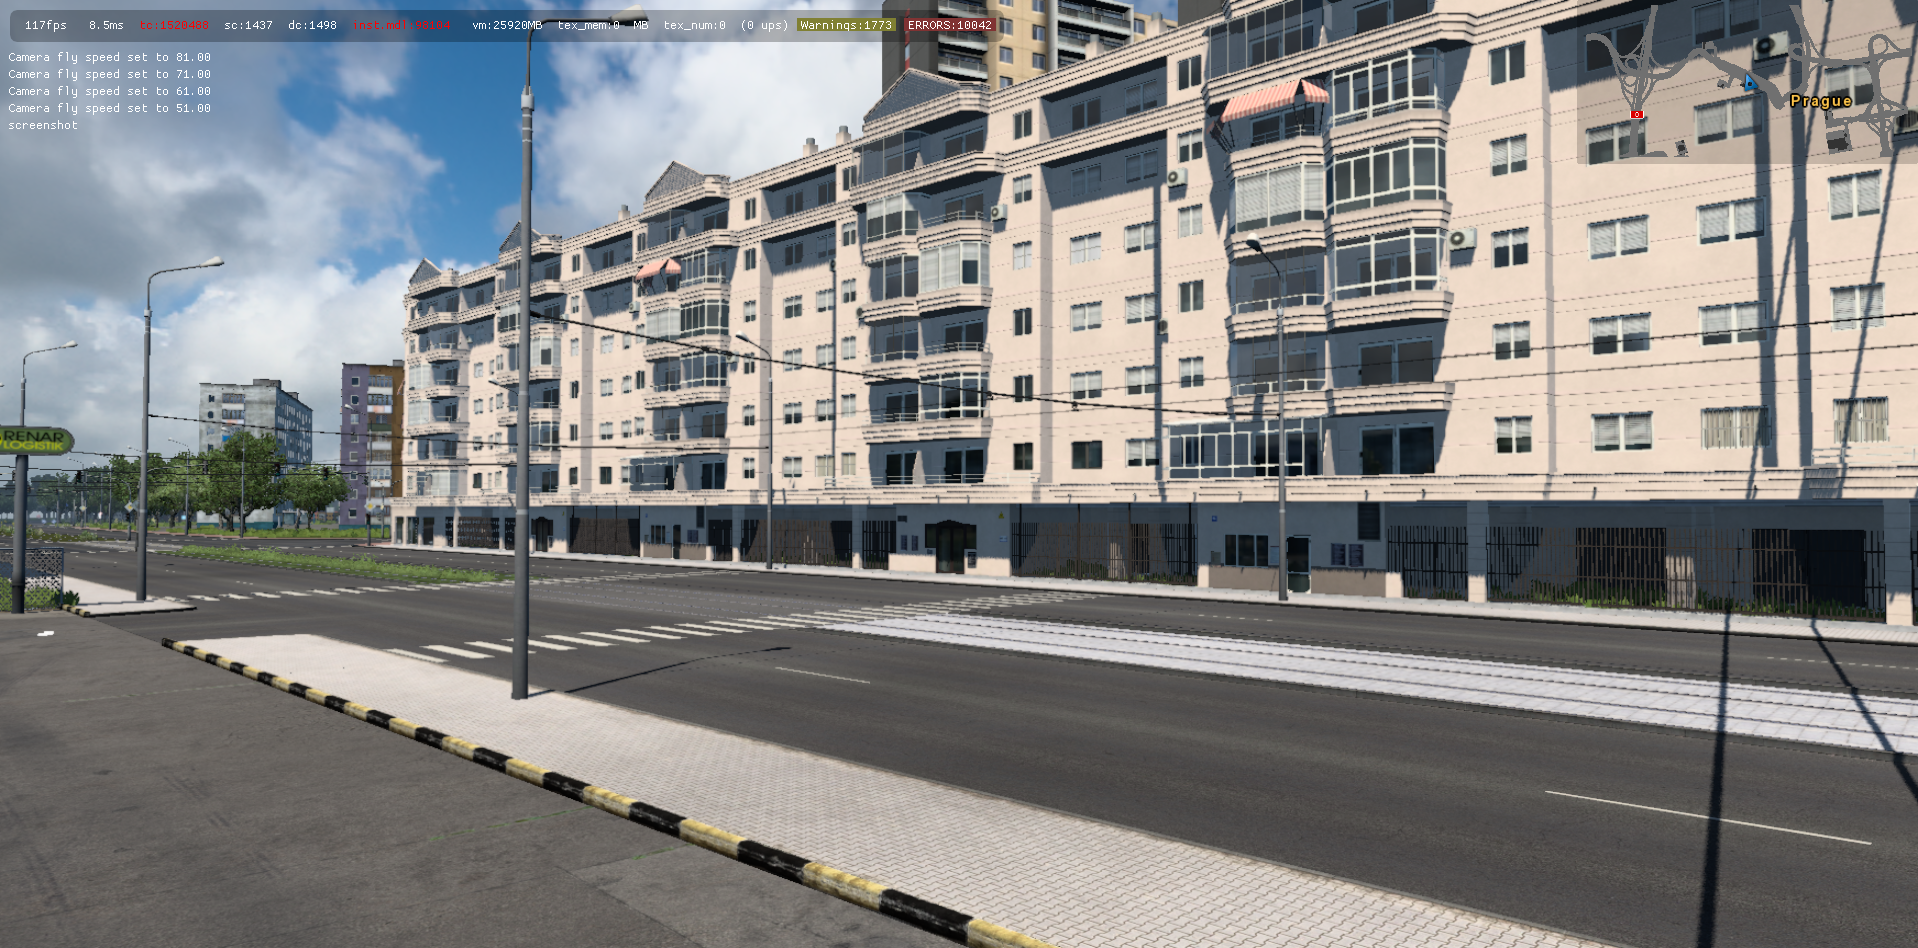 ets2_20210731_235507_00.png